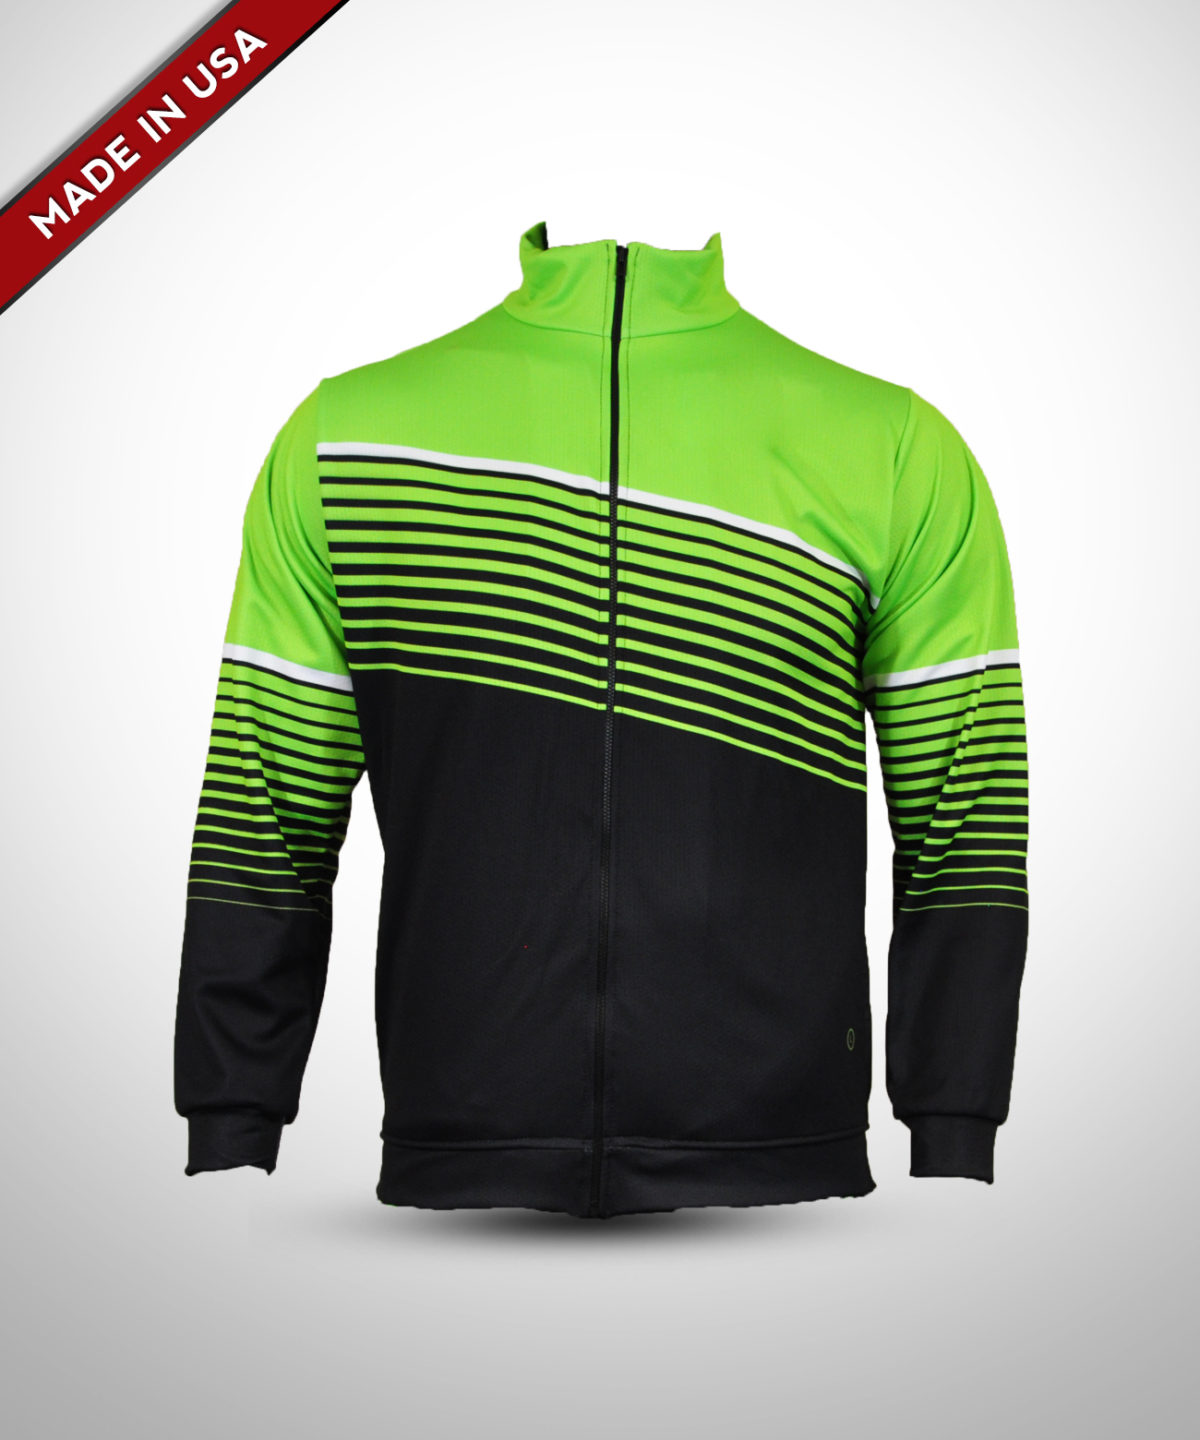 Full Dye Sub Full Zip Warmup Jacket – Adult